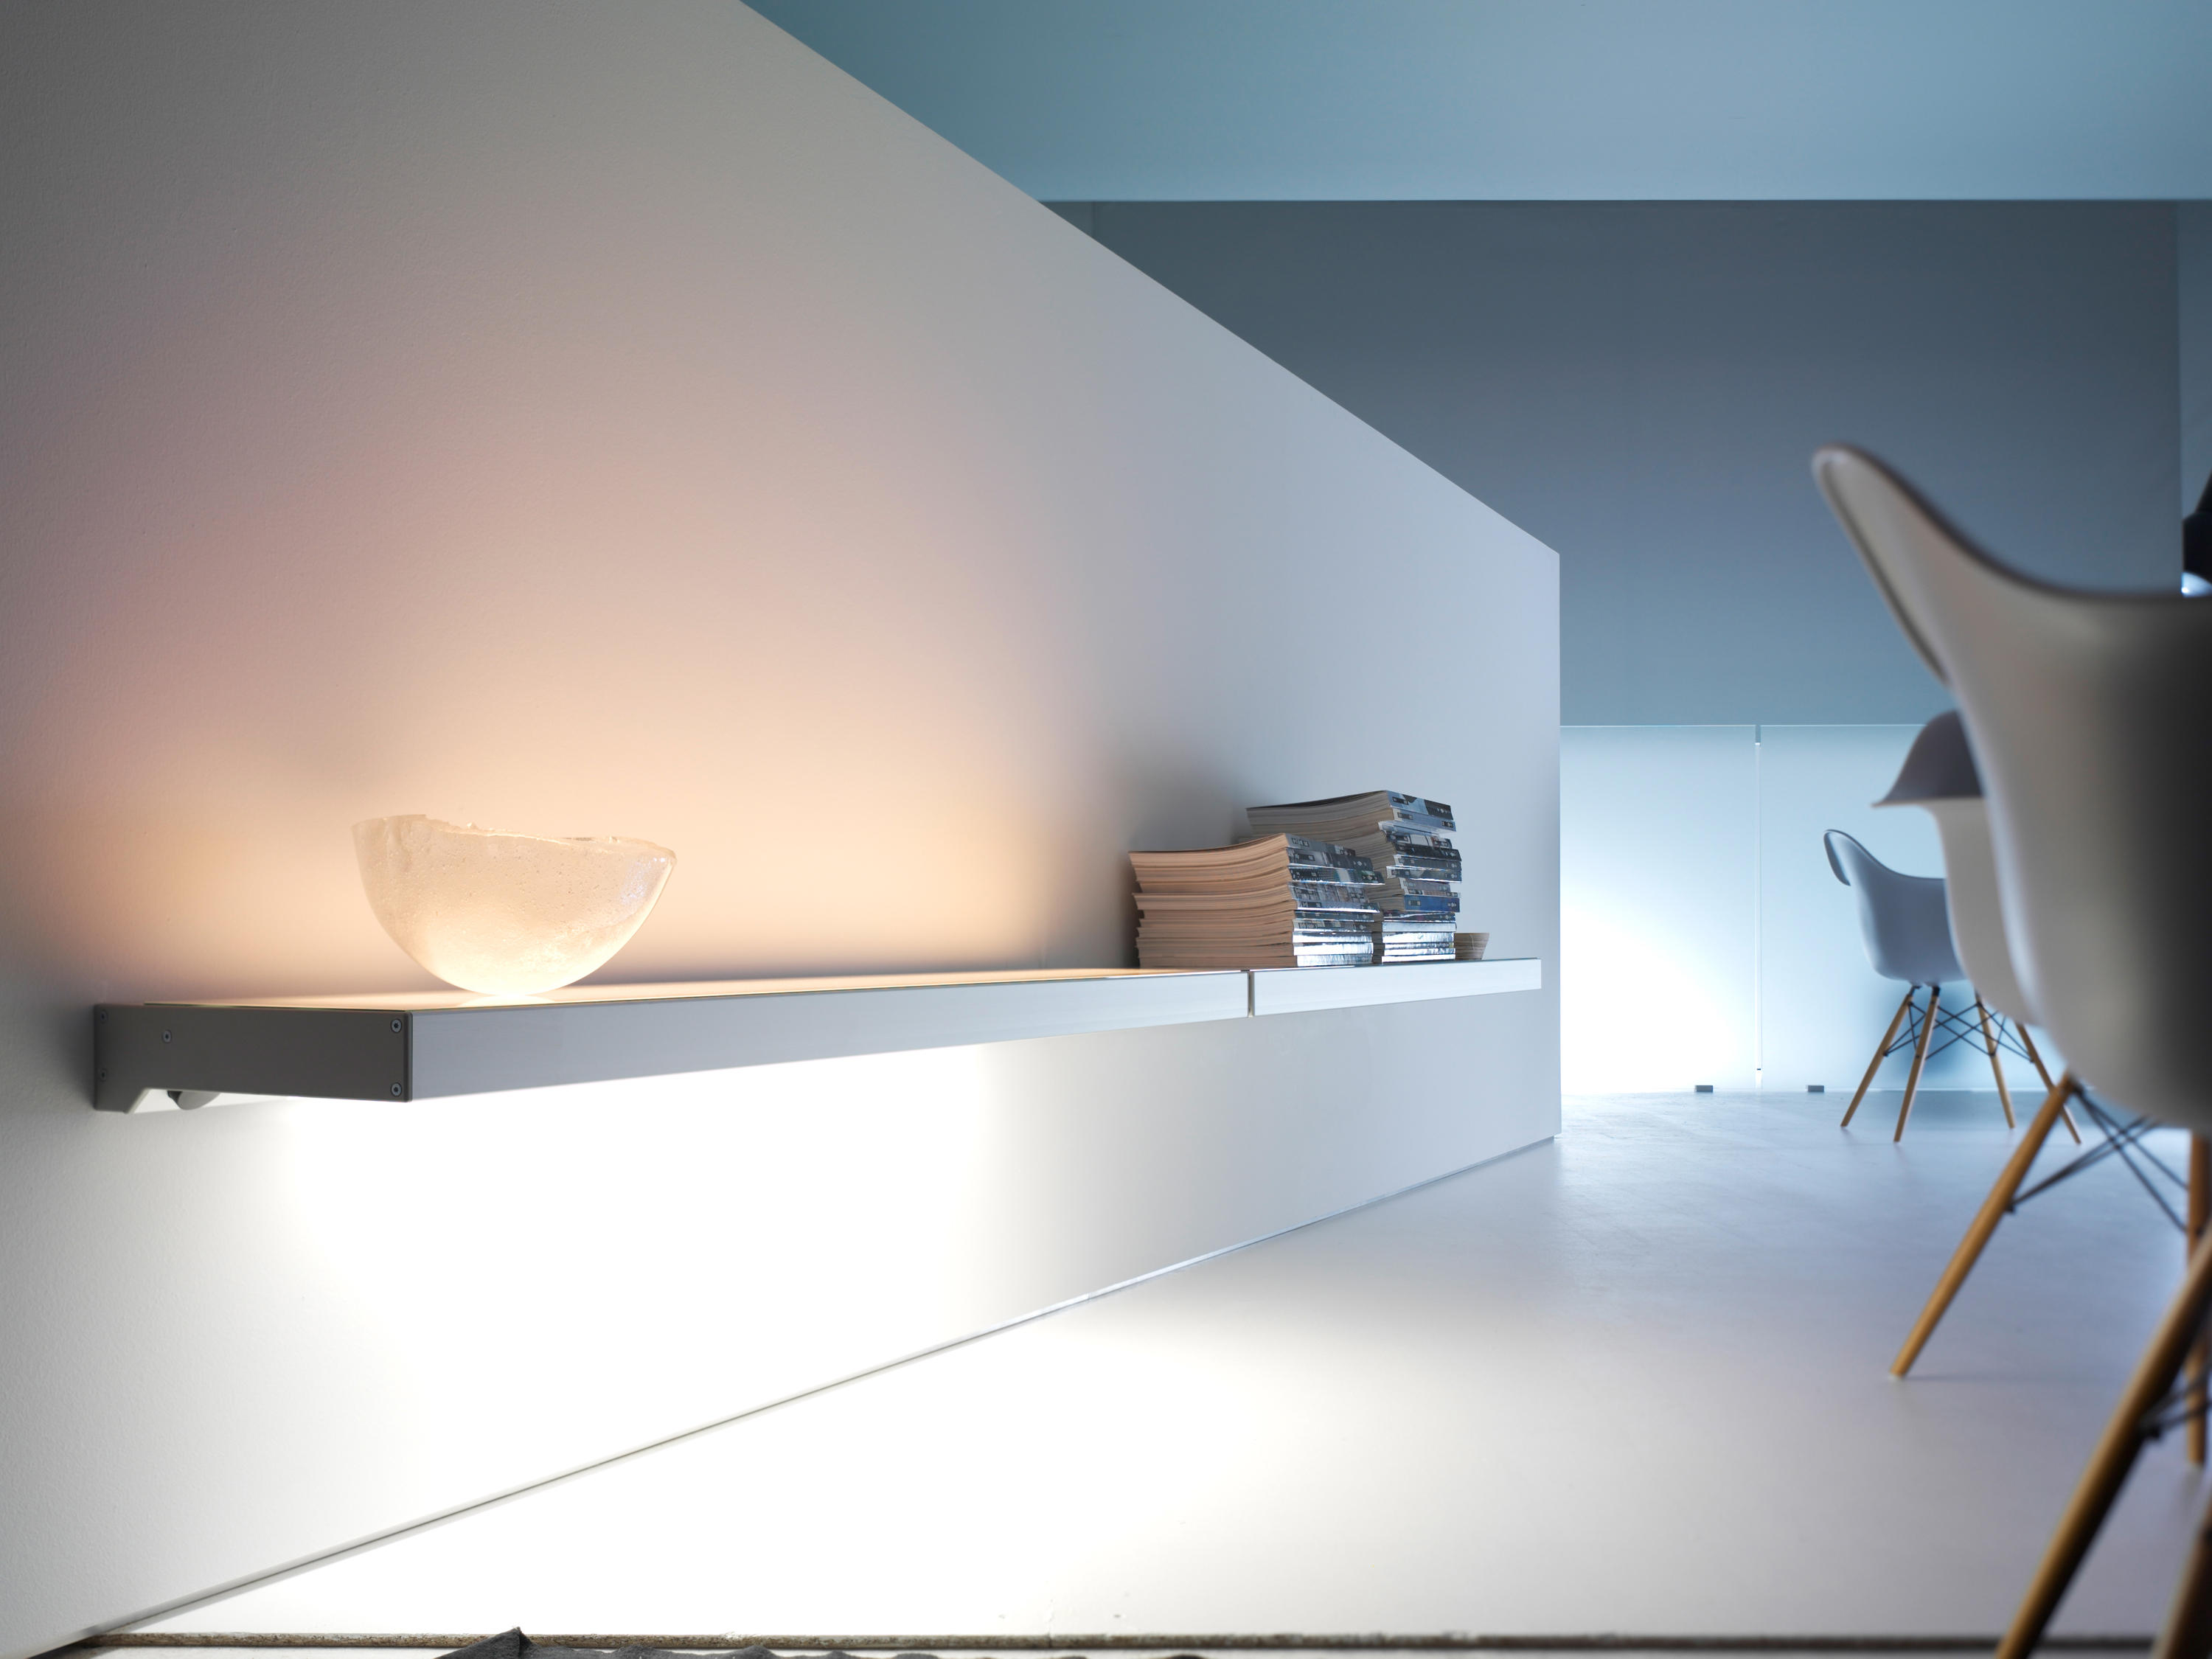 Lighting System 3 Light Board By GERA | Wall Shelves ...